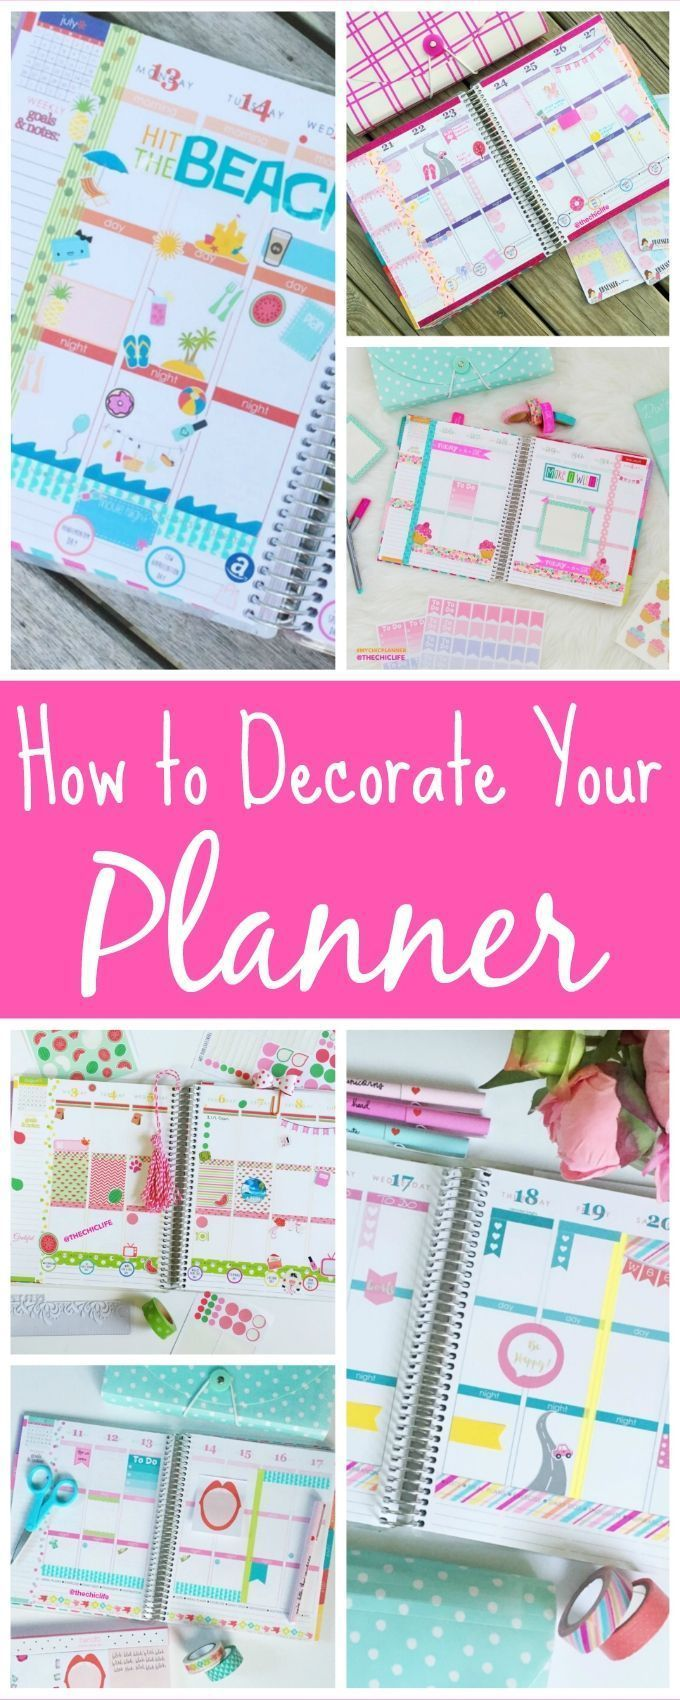 How to Decorate Your Planner